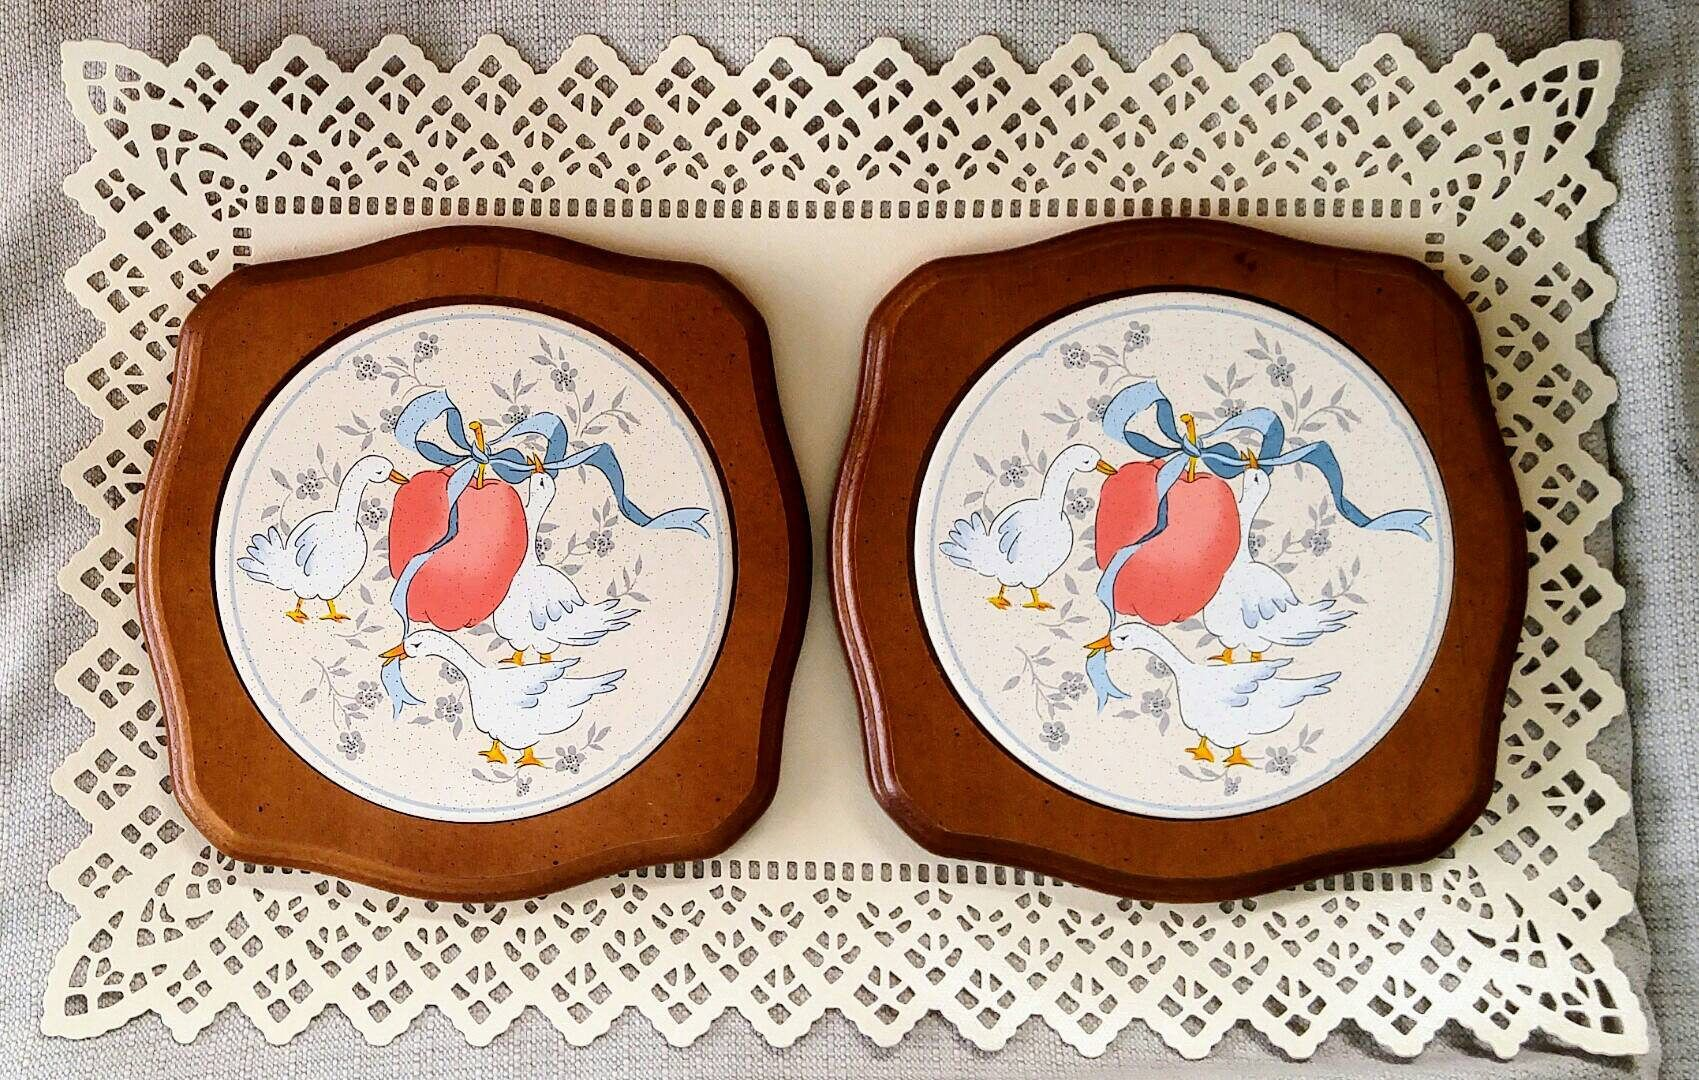 Vintage geese trivet goodwood wall plaque wood frame ceramic tile vintage geese trivet goodwood wall plaque wood frame ceramic tile inlay goose hot plate tableware country farmhouse 70s kitchen decor taiwan dailygadgetfo Image collections